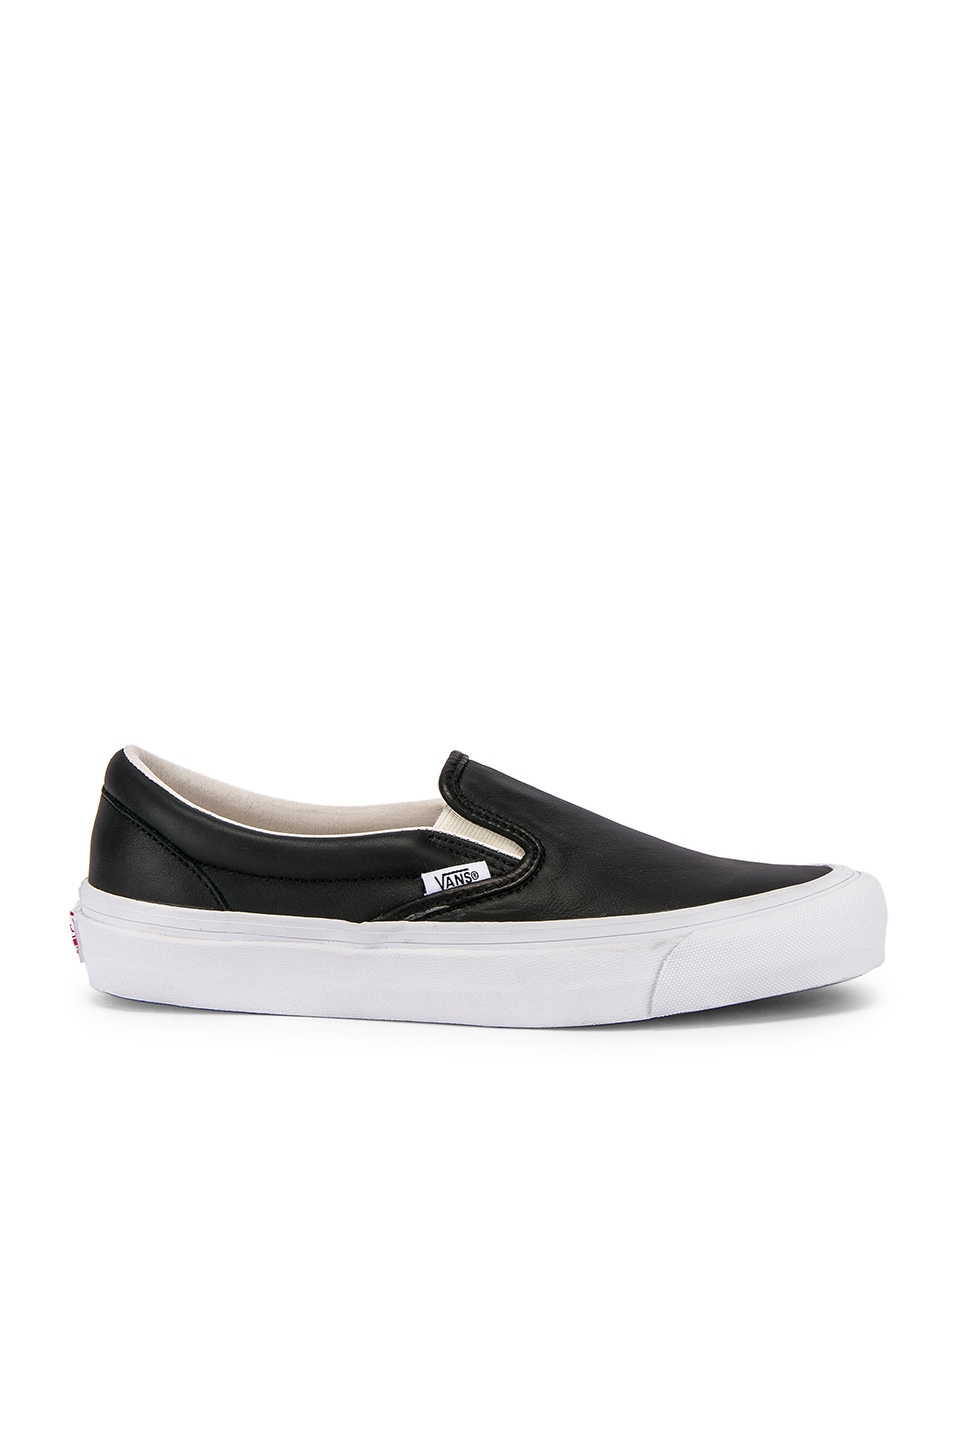 Image 2 of Vans Vault OG Classic Slip-On LX in Black